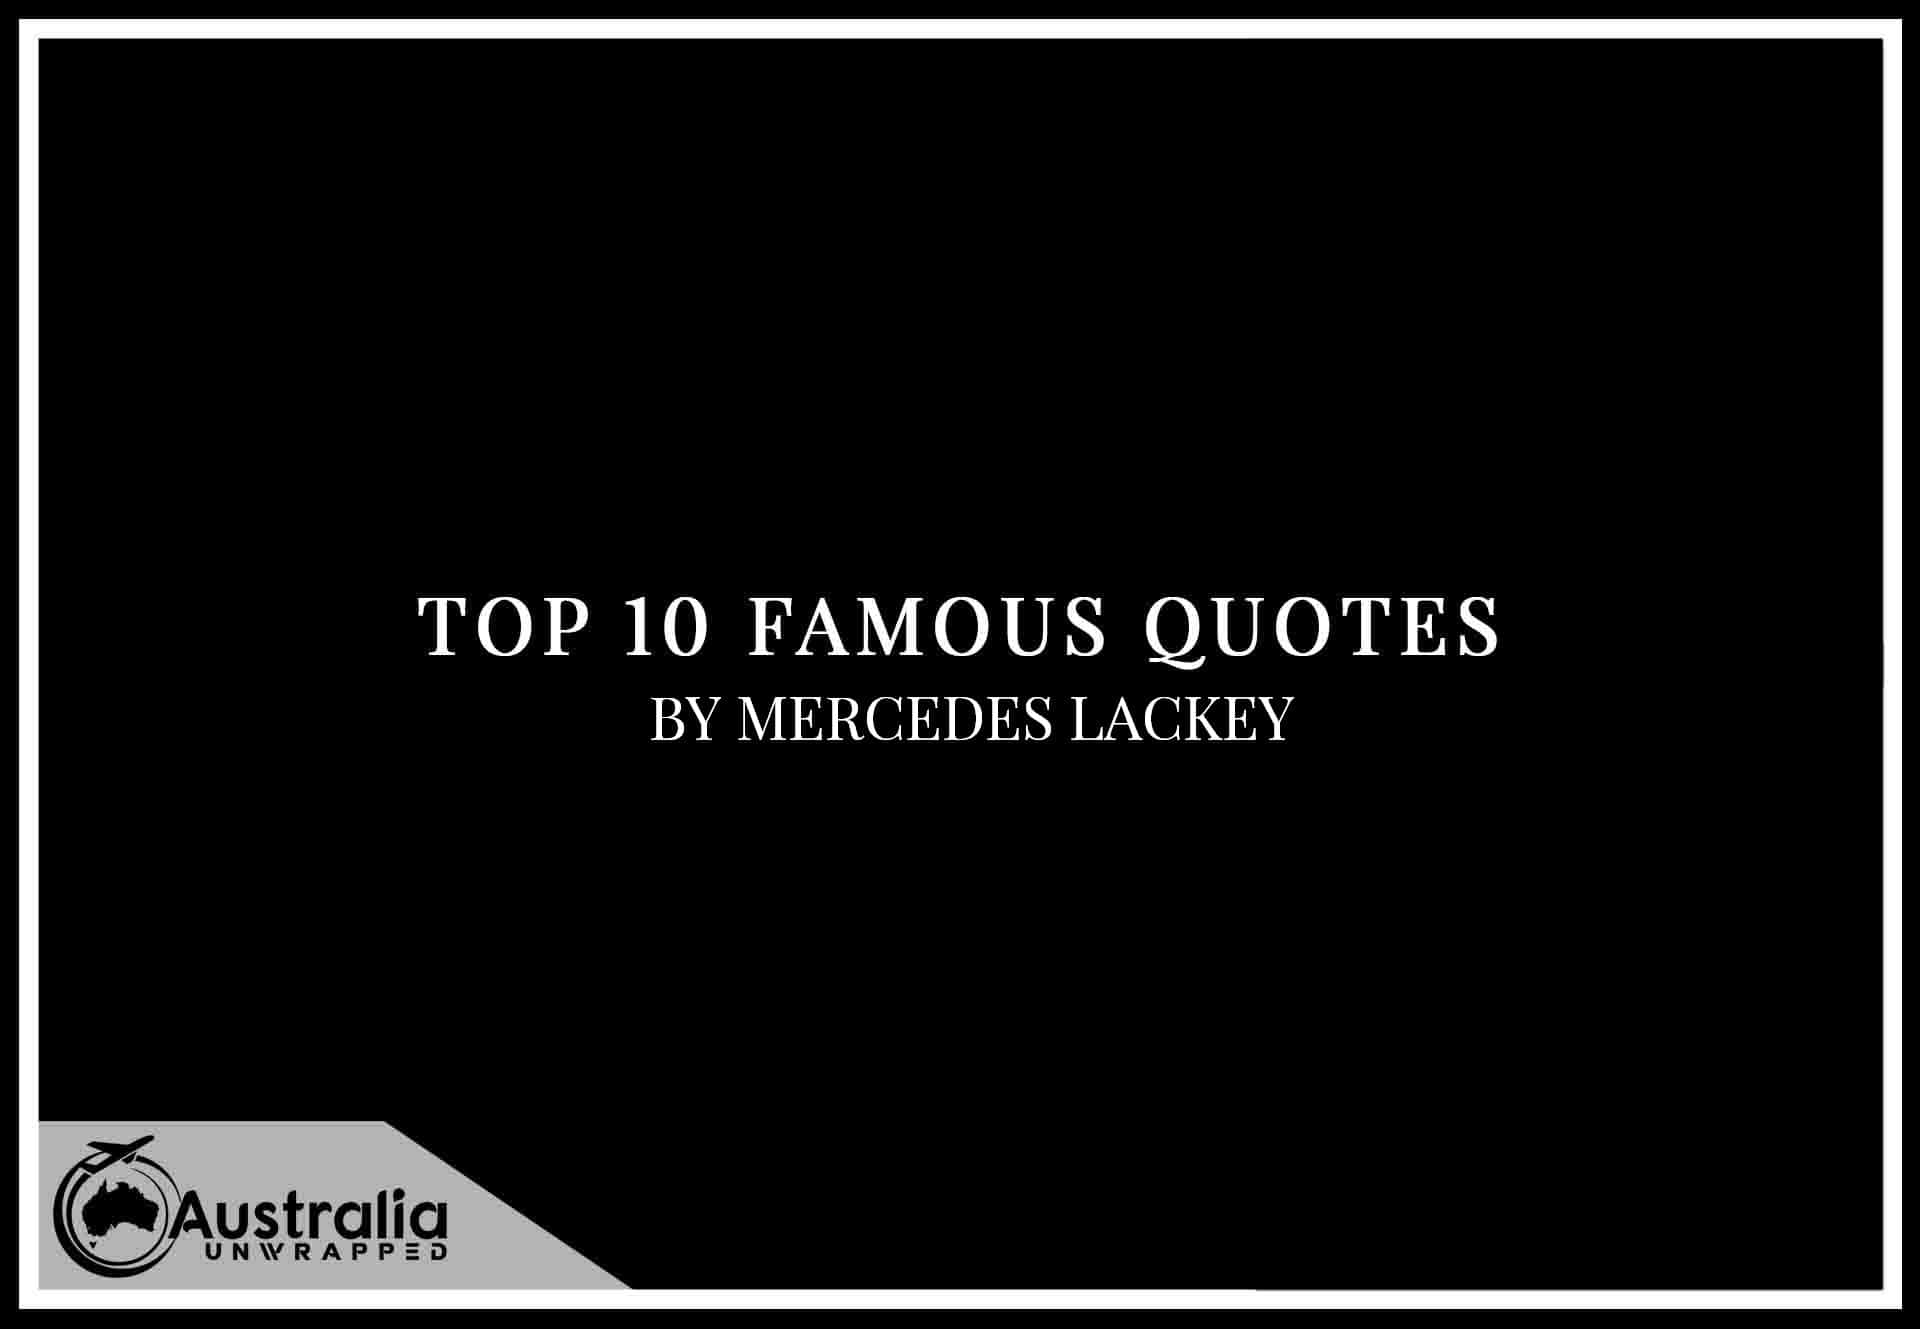 Top 10 Famous Quotes by Author Mercedes Lackey